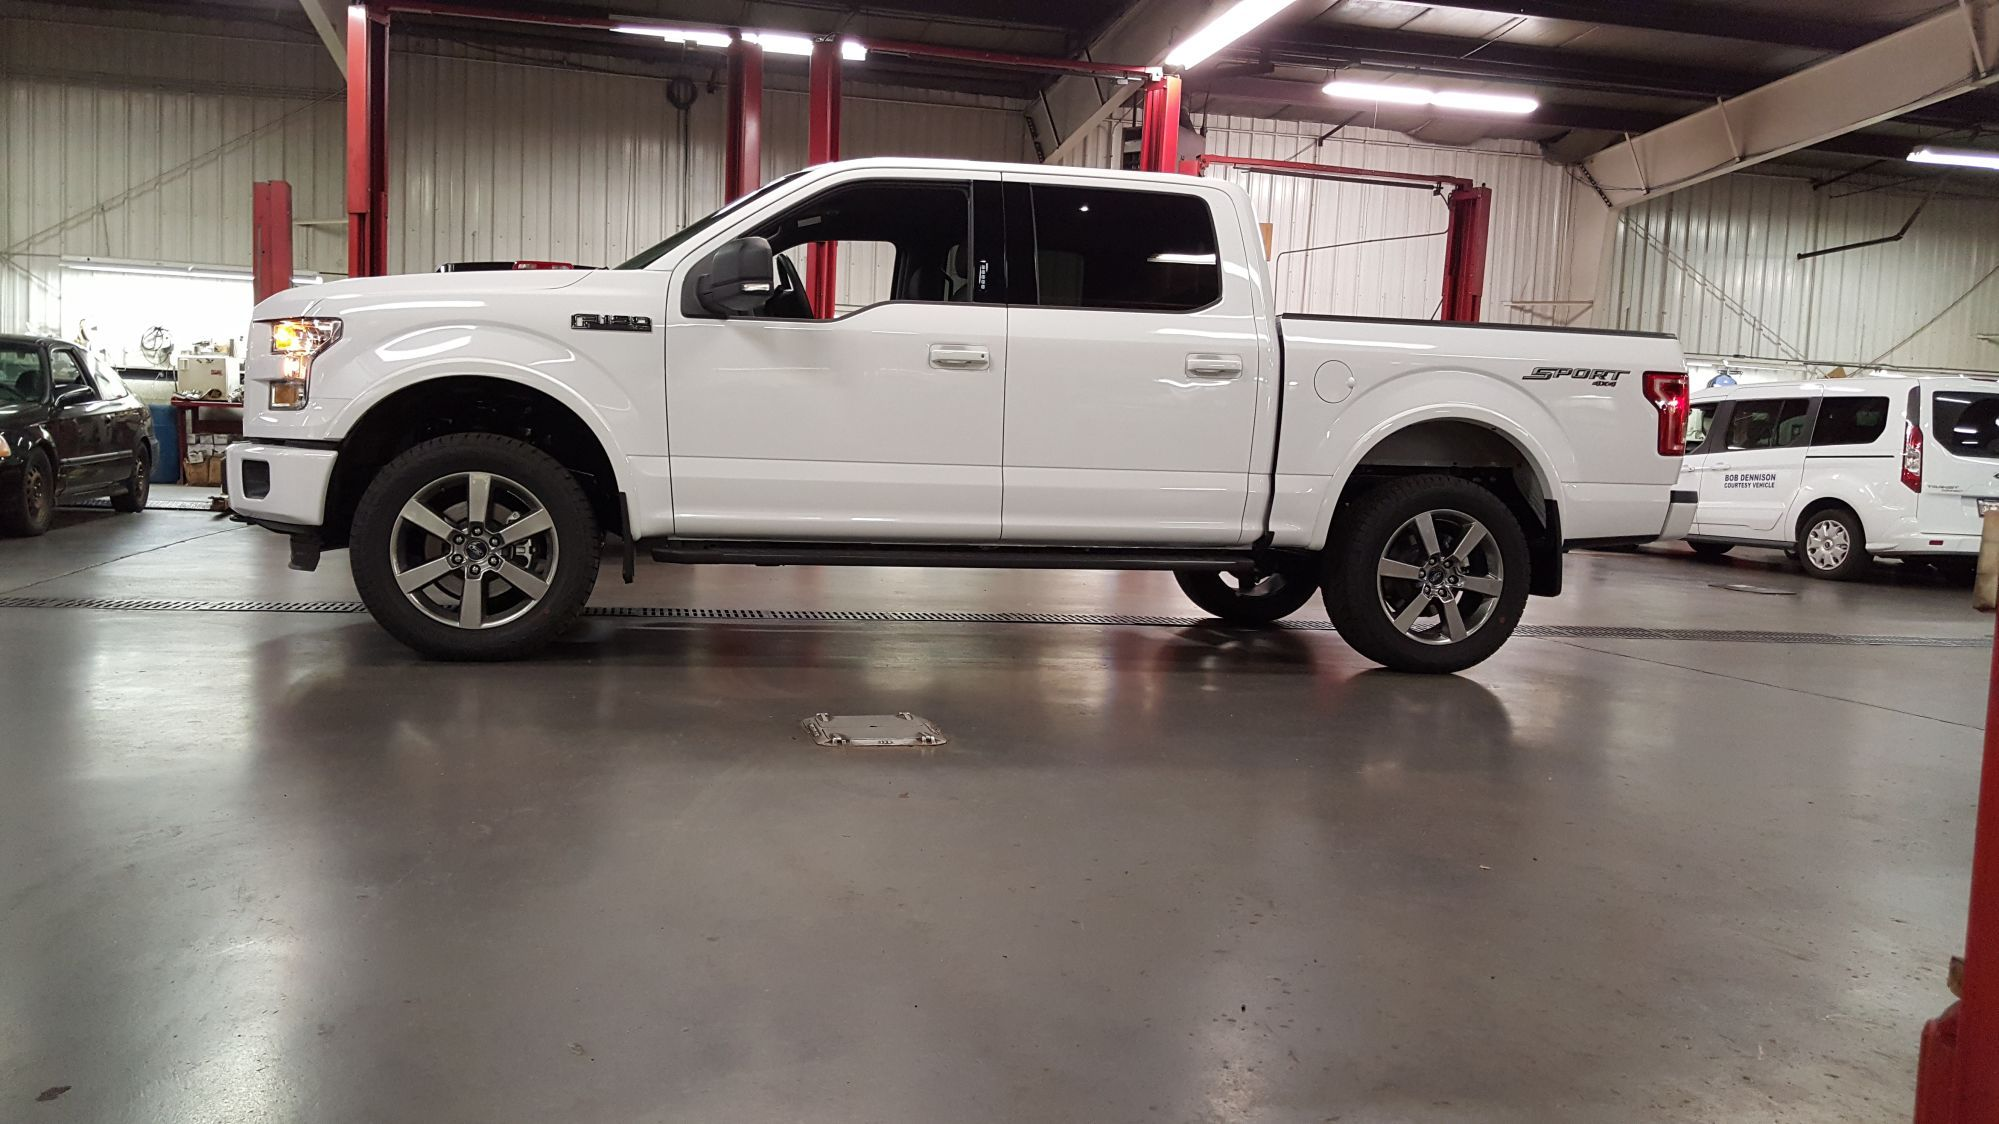 Show Me Your Leveled Trucks With Oem Rims Ford F150 Forum Community Of Ford Truck Fans Ford F150 F150 Ford Truck